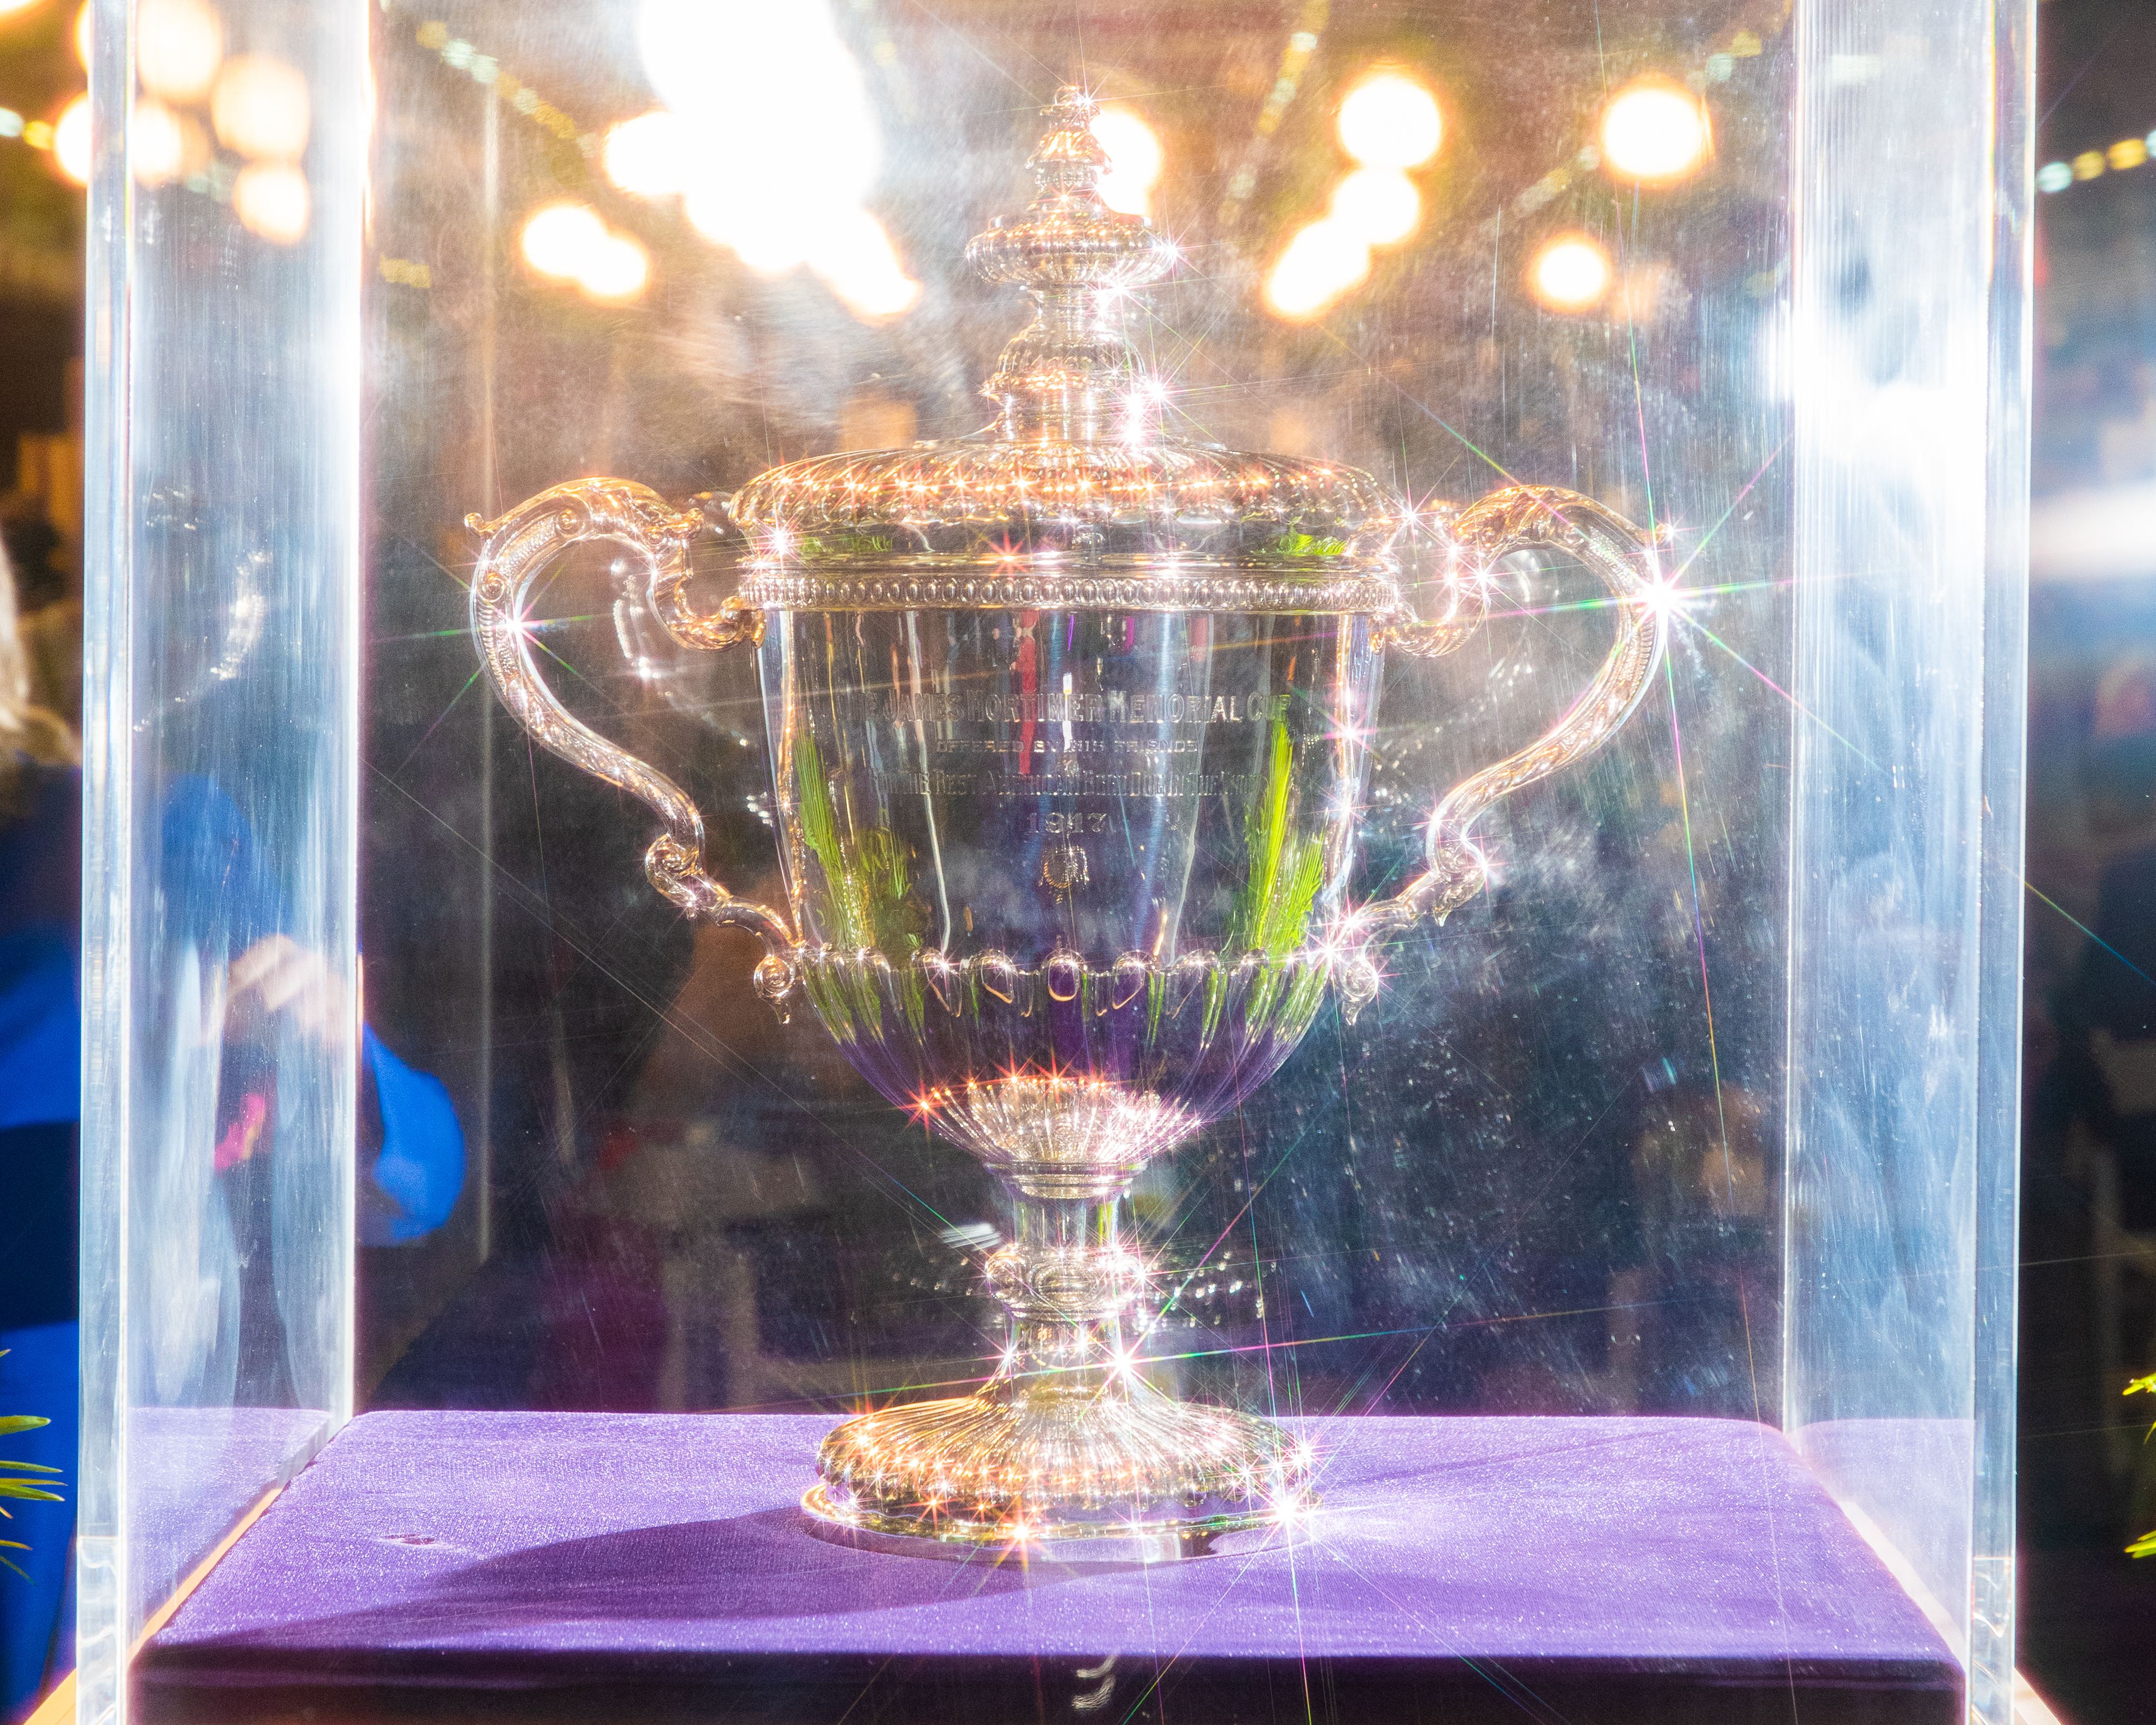 The James Mortimer Memorial Cup, photographed using a star filter, is awarded to the Best in Show